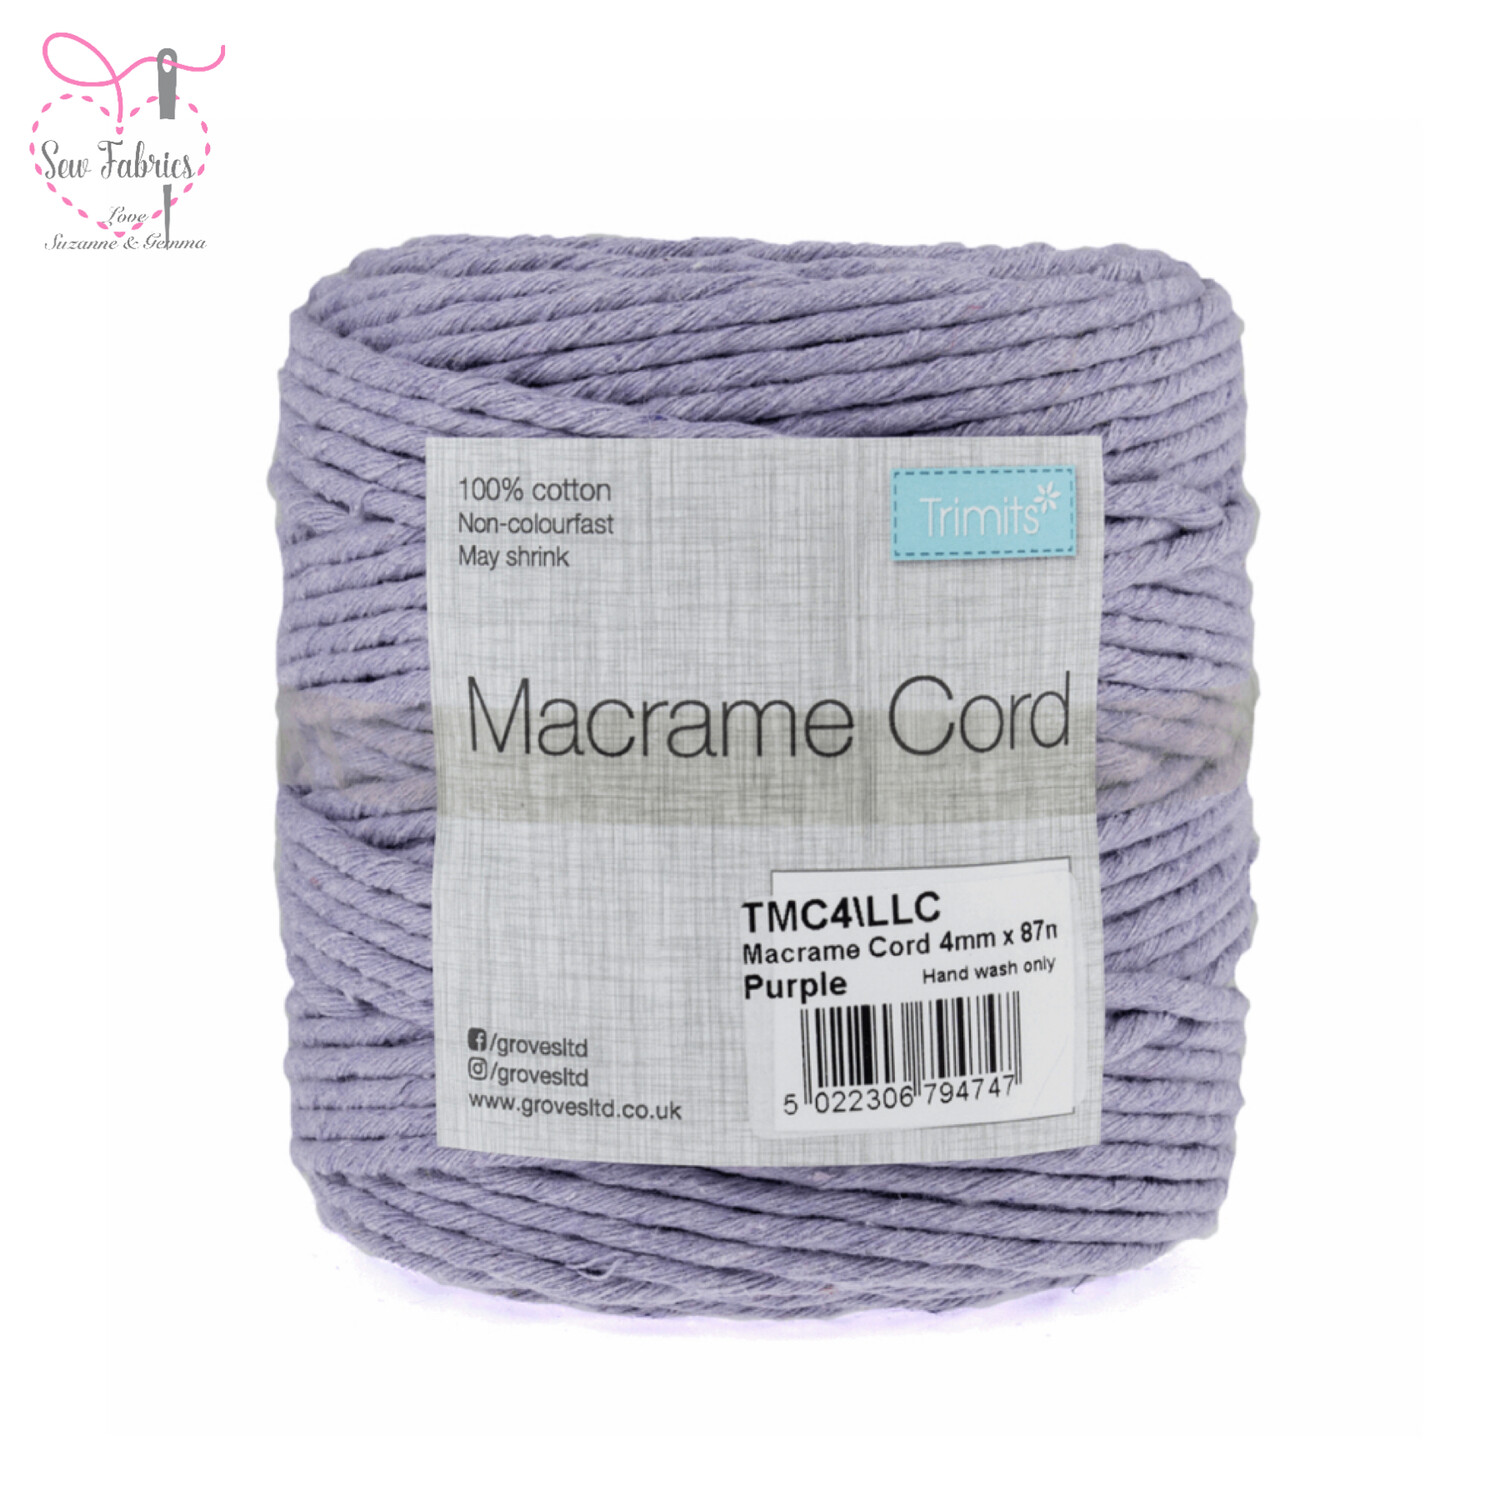 4mm Lilac Trimits Macrame Cord, 100% Cotton, String, Craft, Made in UK, 87m Spool